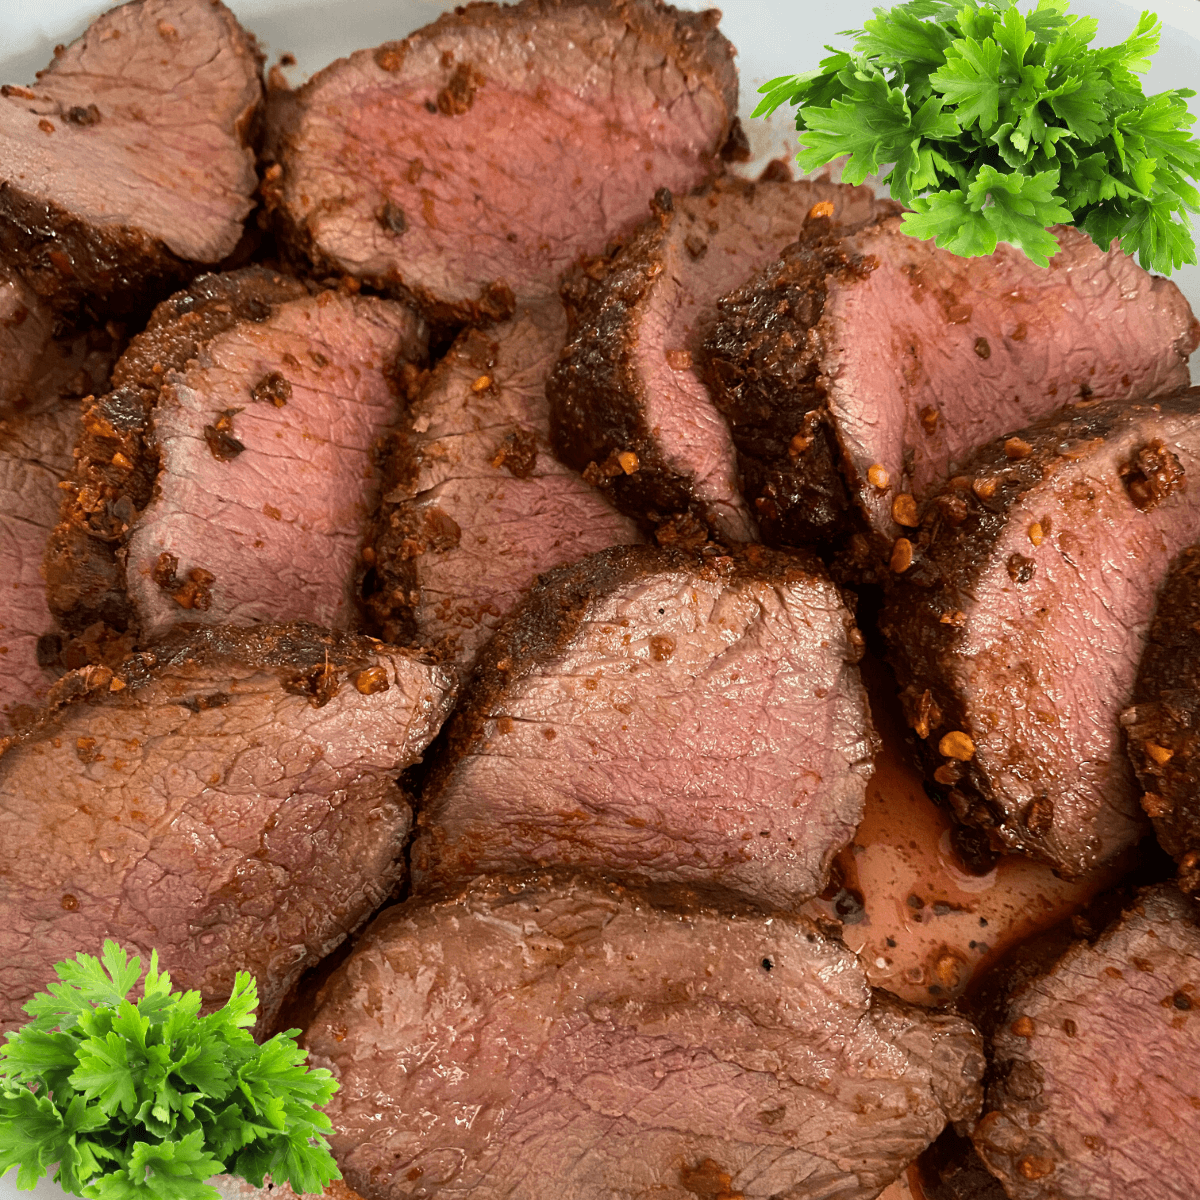 Grilled Dry Rubbed Venison Backstrap